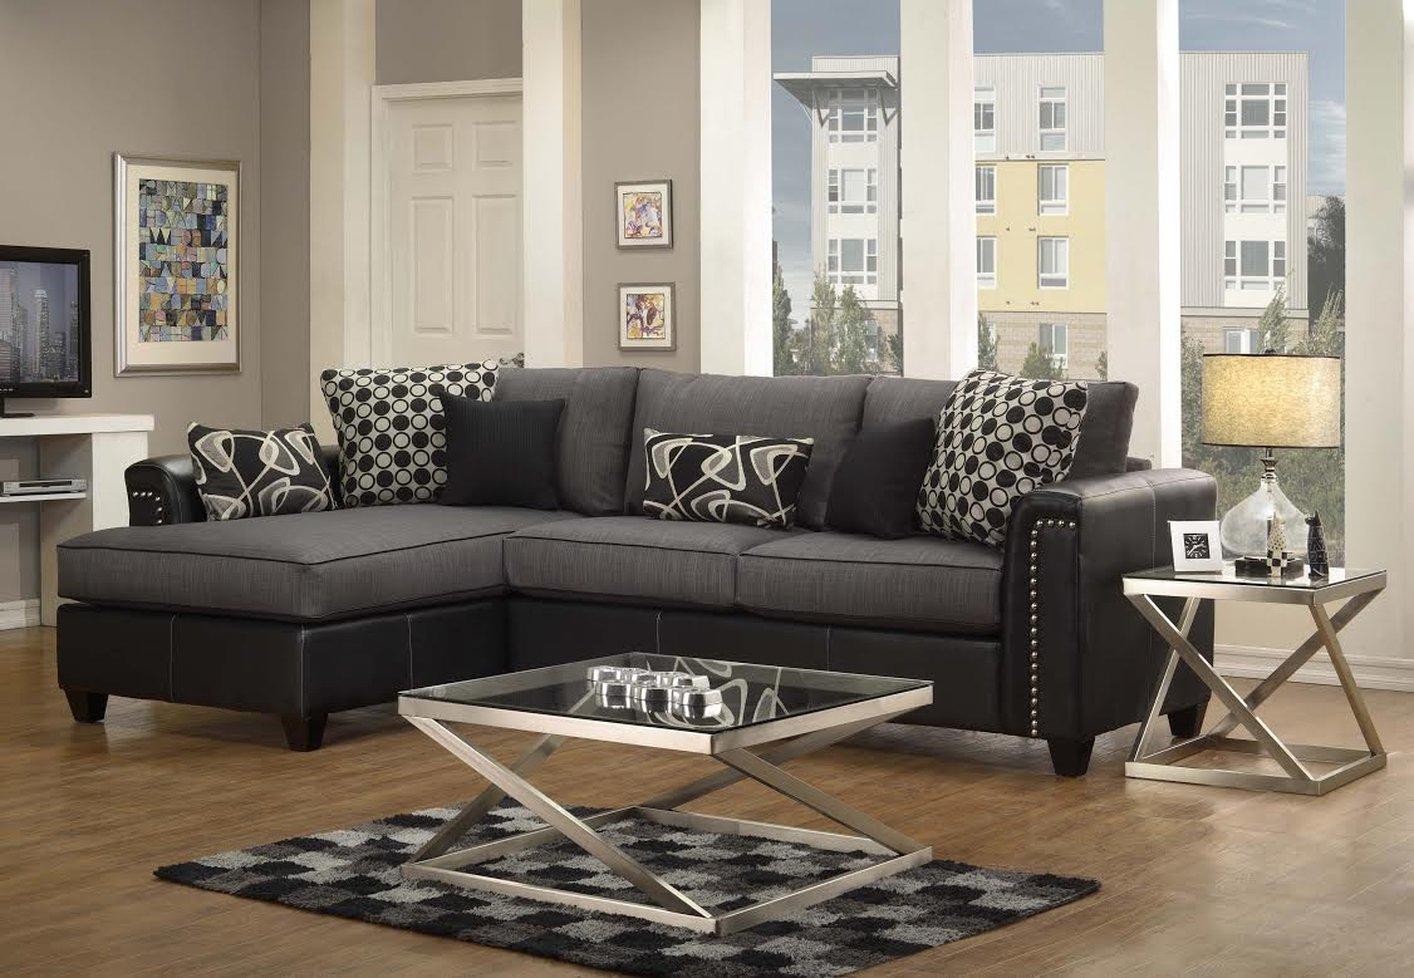 Black Fabric Sectional Sofa – Steal A Sofa Furniture For Los Angeles Sectional Sofas (View 11 of 15)